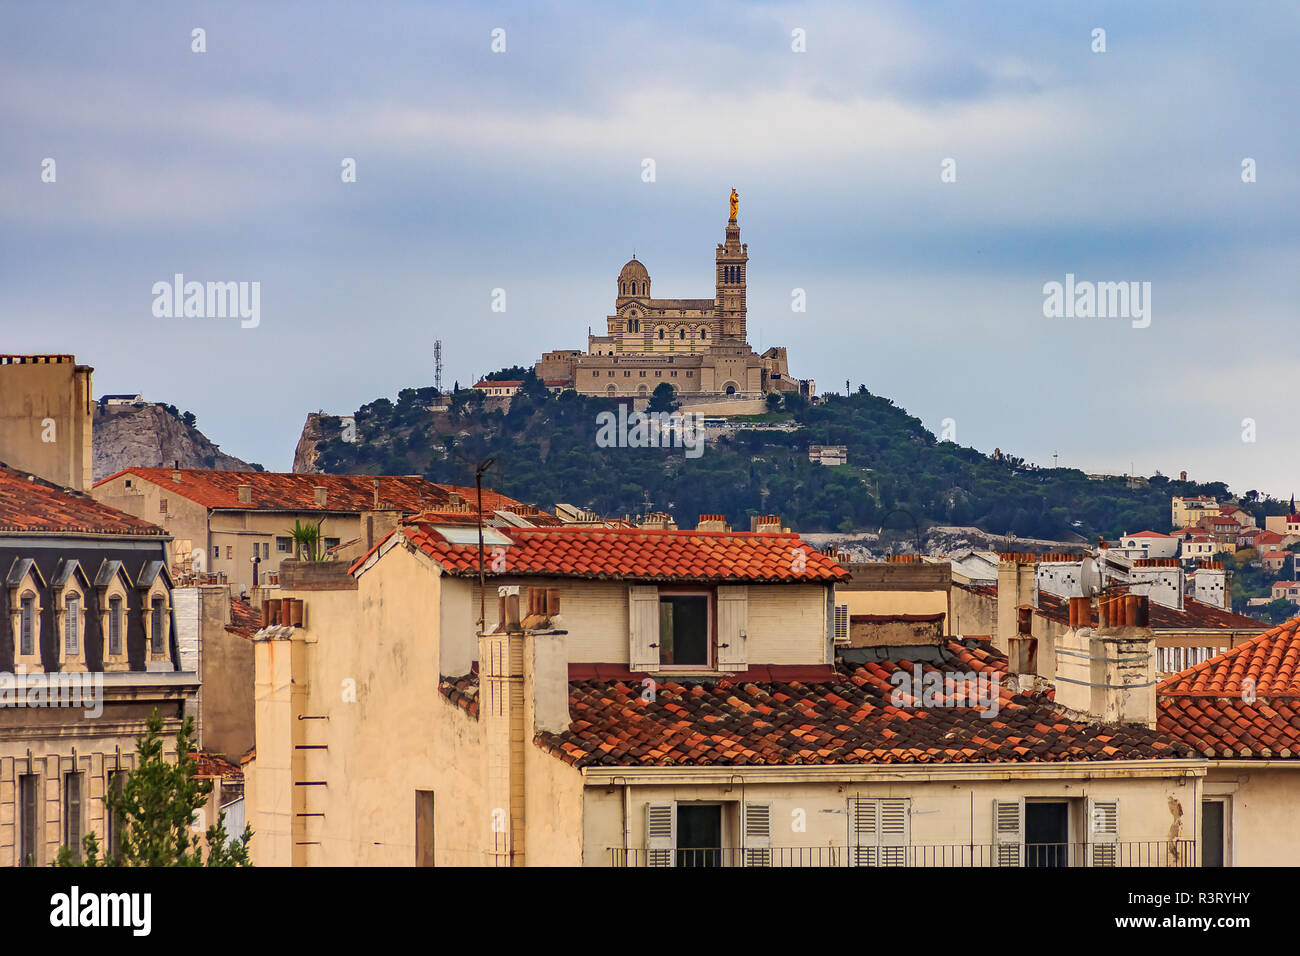 View onto city rooftops and Notre-Dame de la Garde Catholic basilica on the hill, city's best-known symbol and site of a popular Assumption Day pilgri - Stock Image